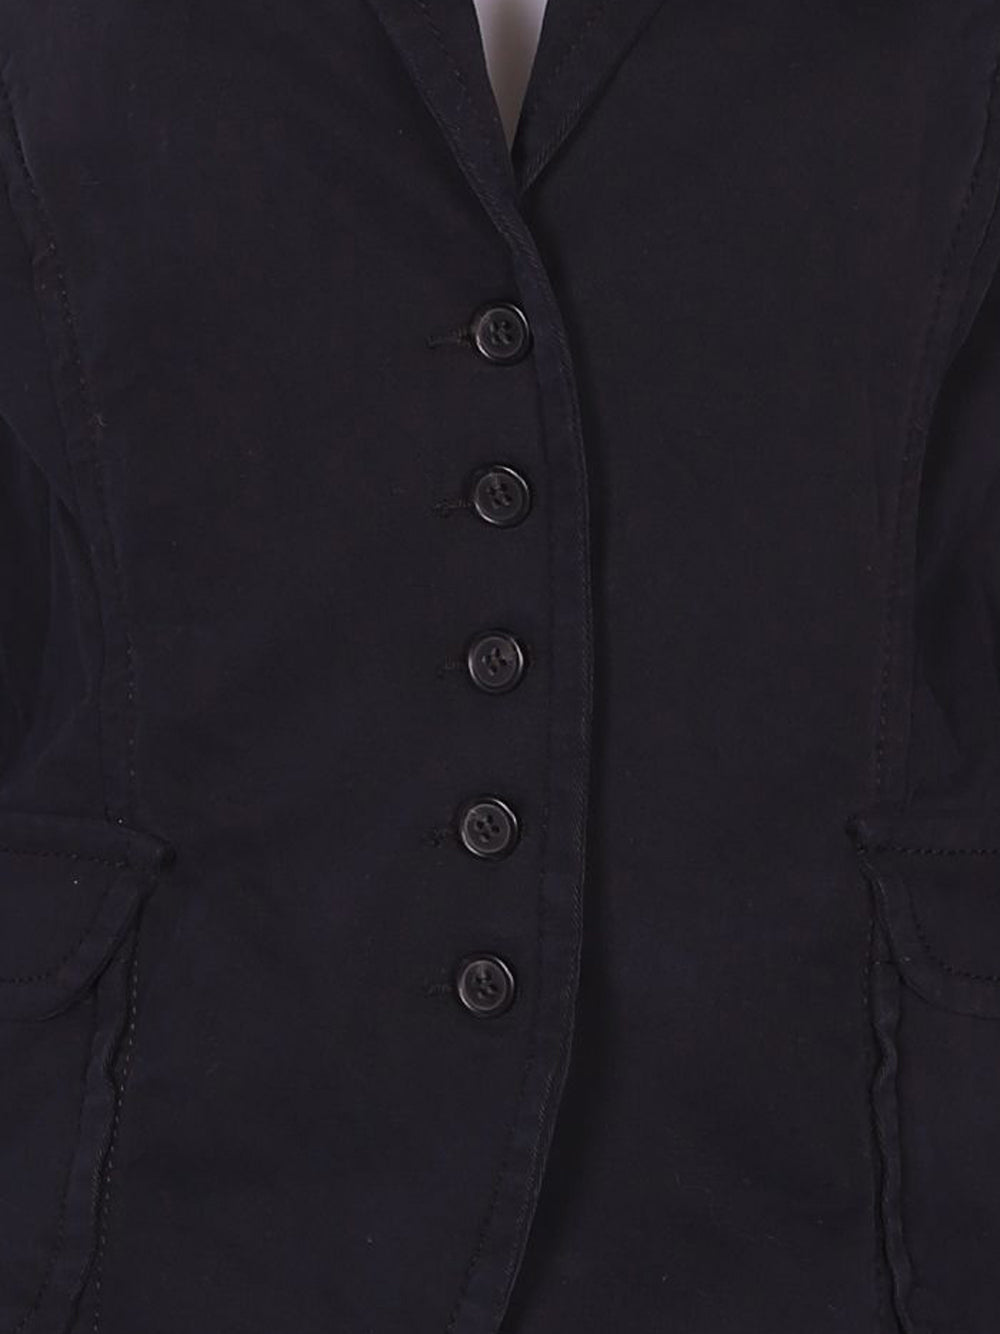 Detail photo of Preloved Sisley Black Woman's blazer - size 10/M